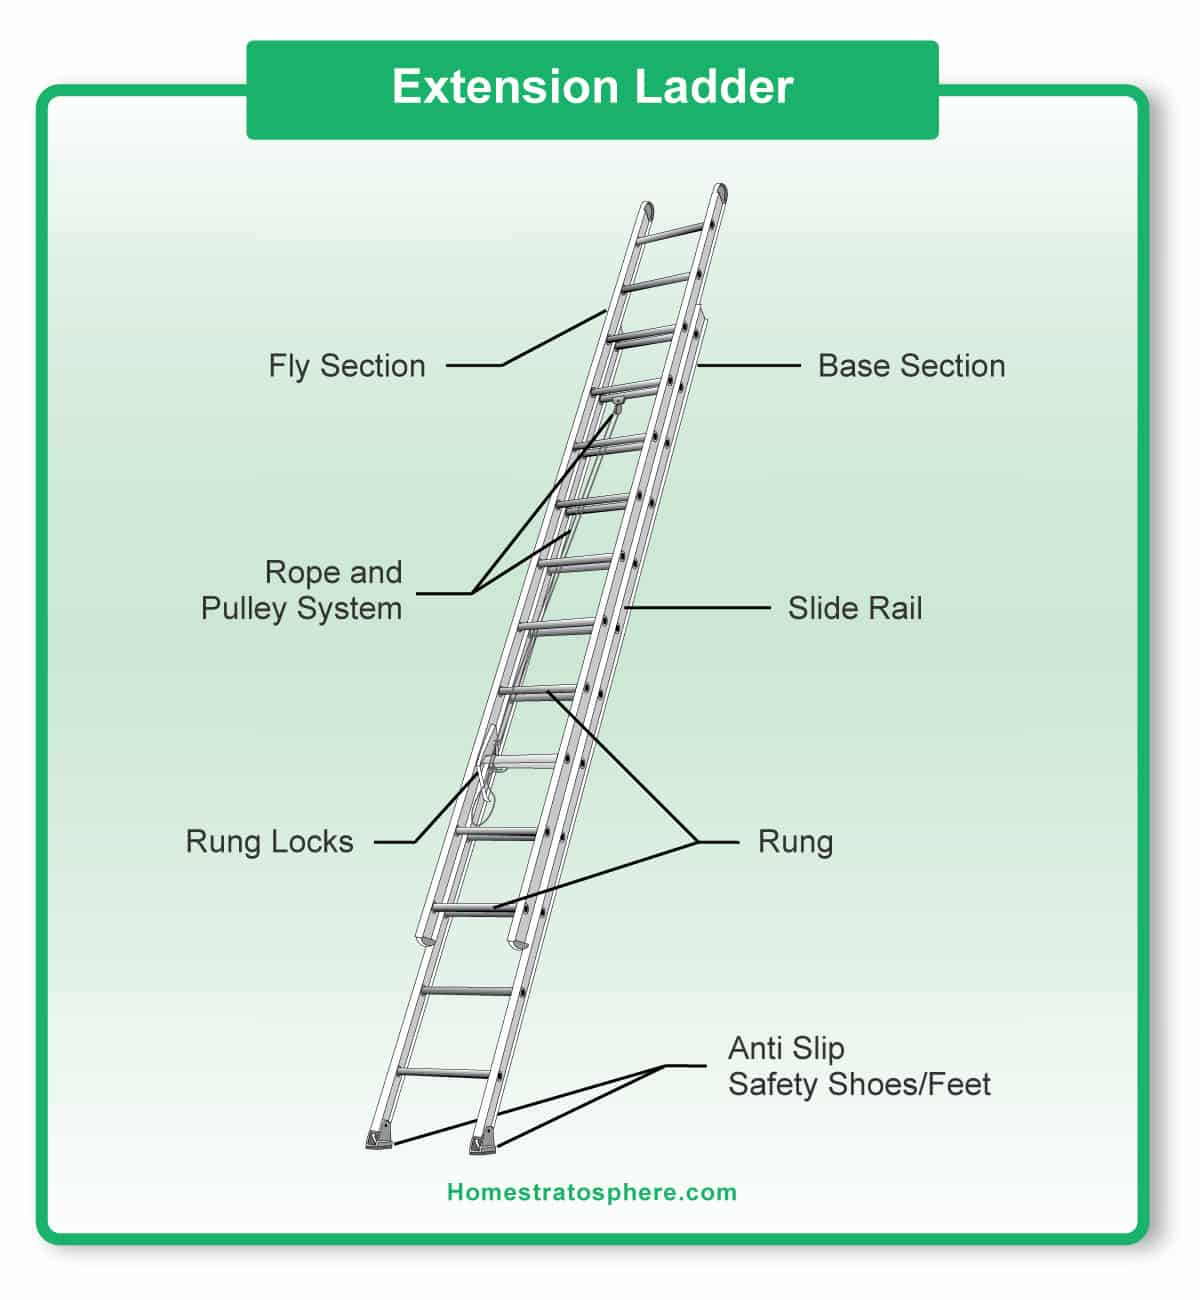 Diagram showing the parts of an extension ladder